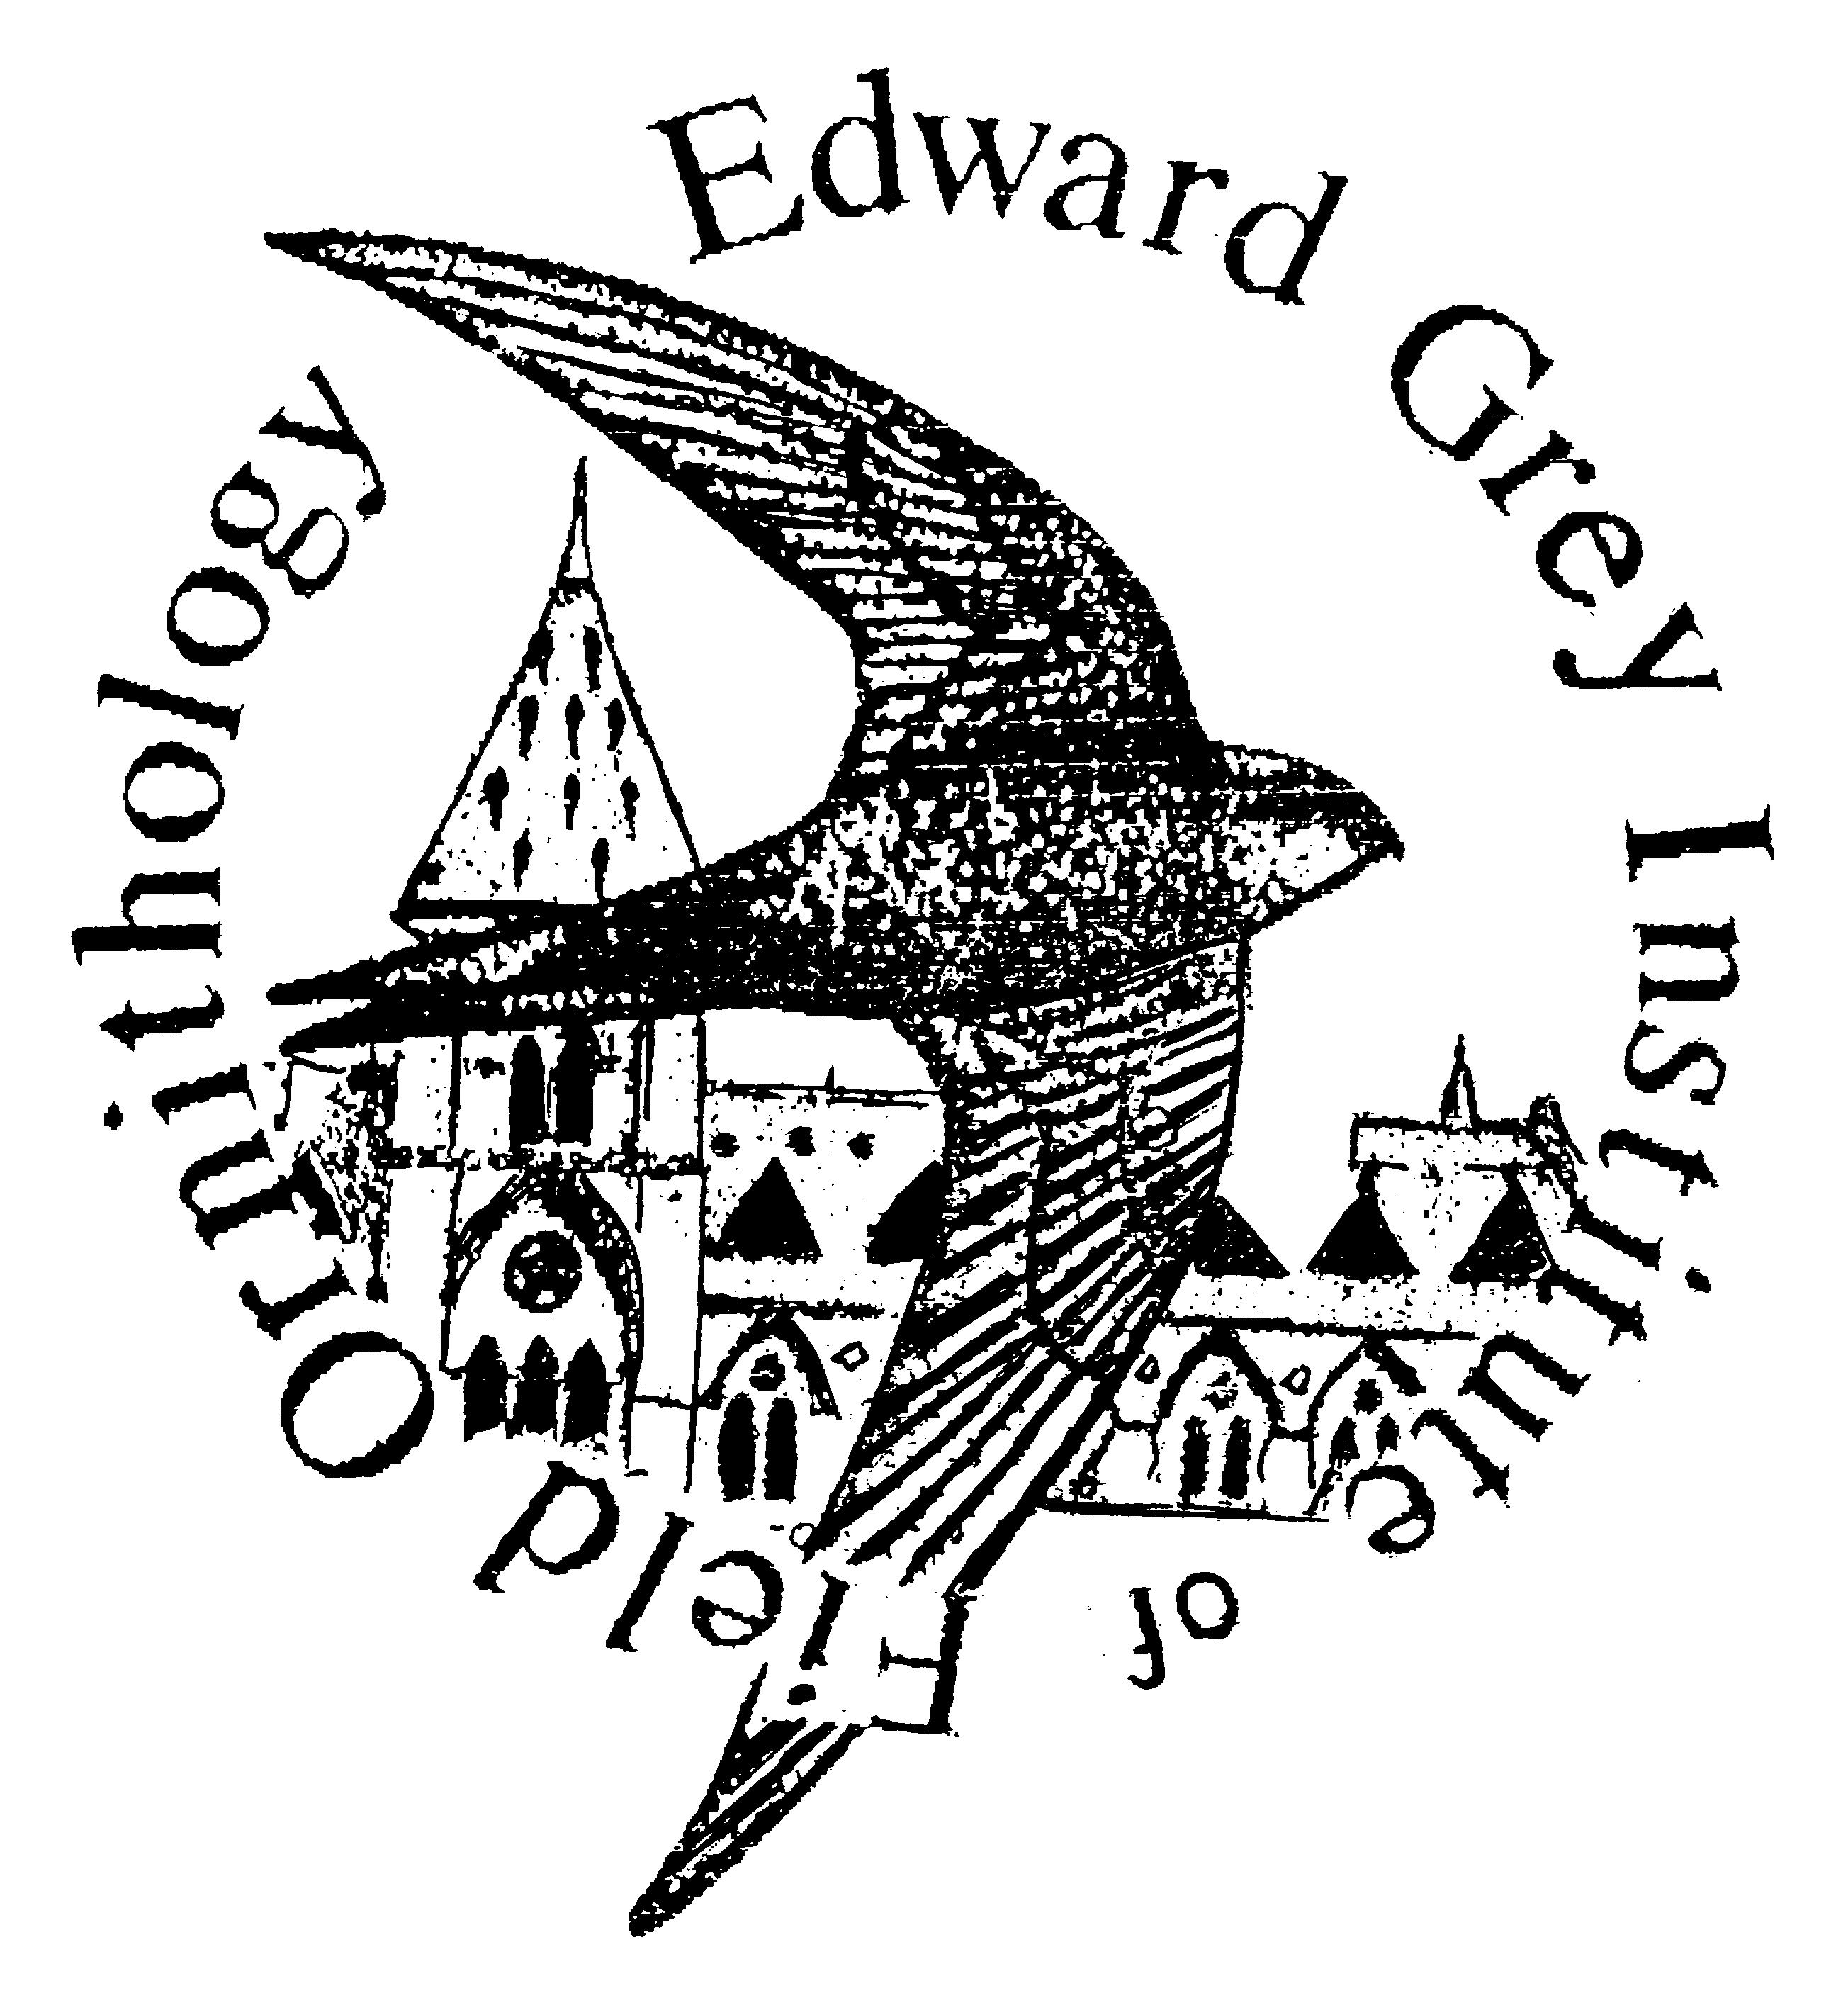 Edward Greyb Institute logo